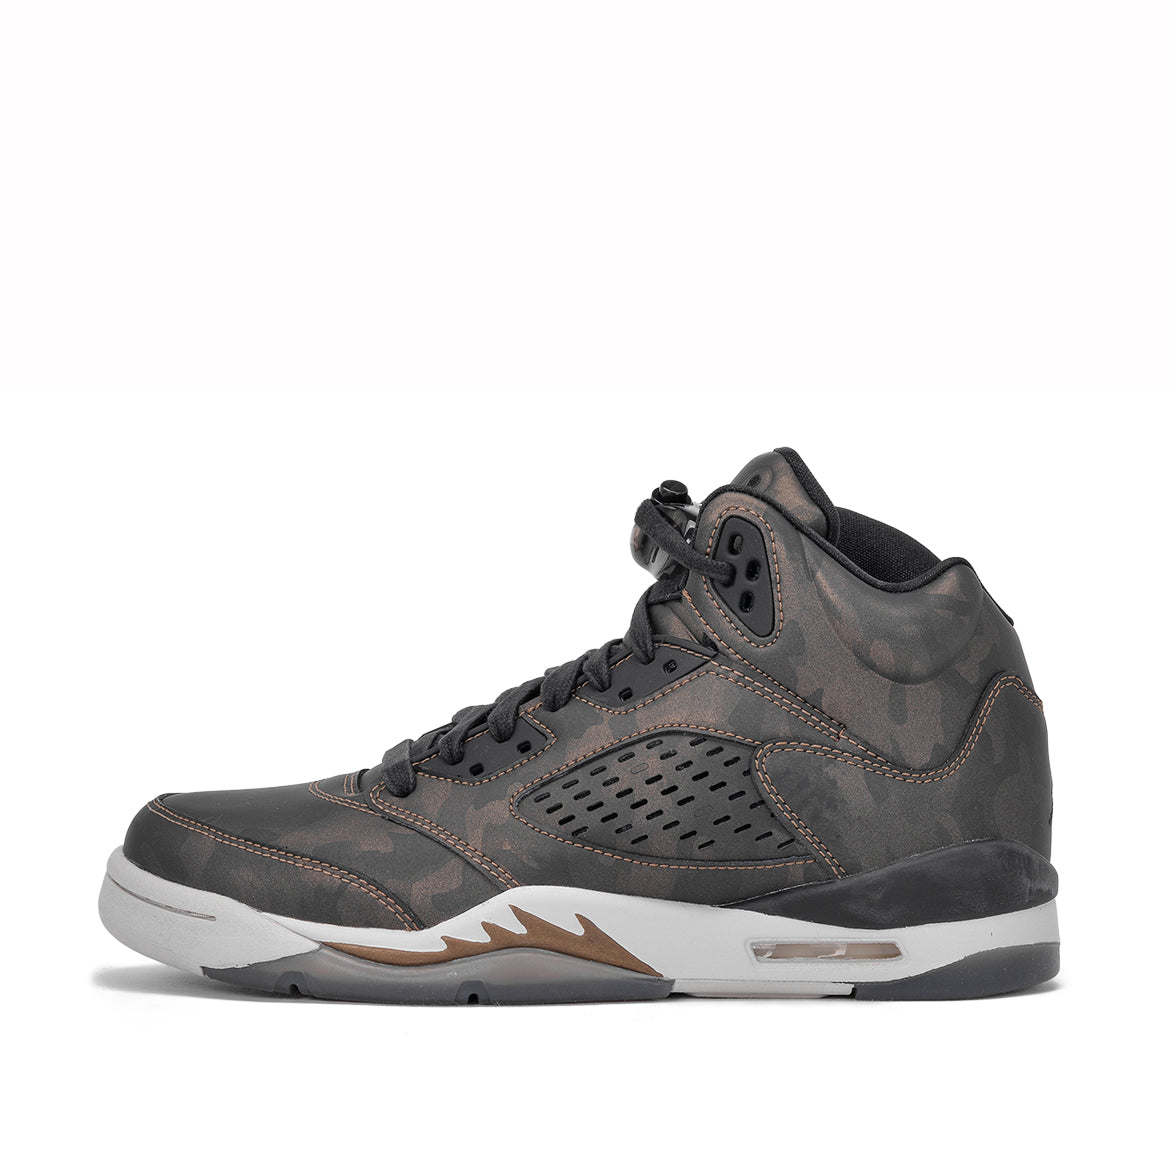 super popular d7861 67842 AIR JORDAN 5 RETRO PREM HC (GS) -